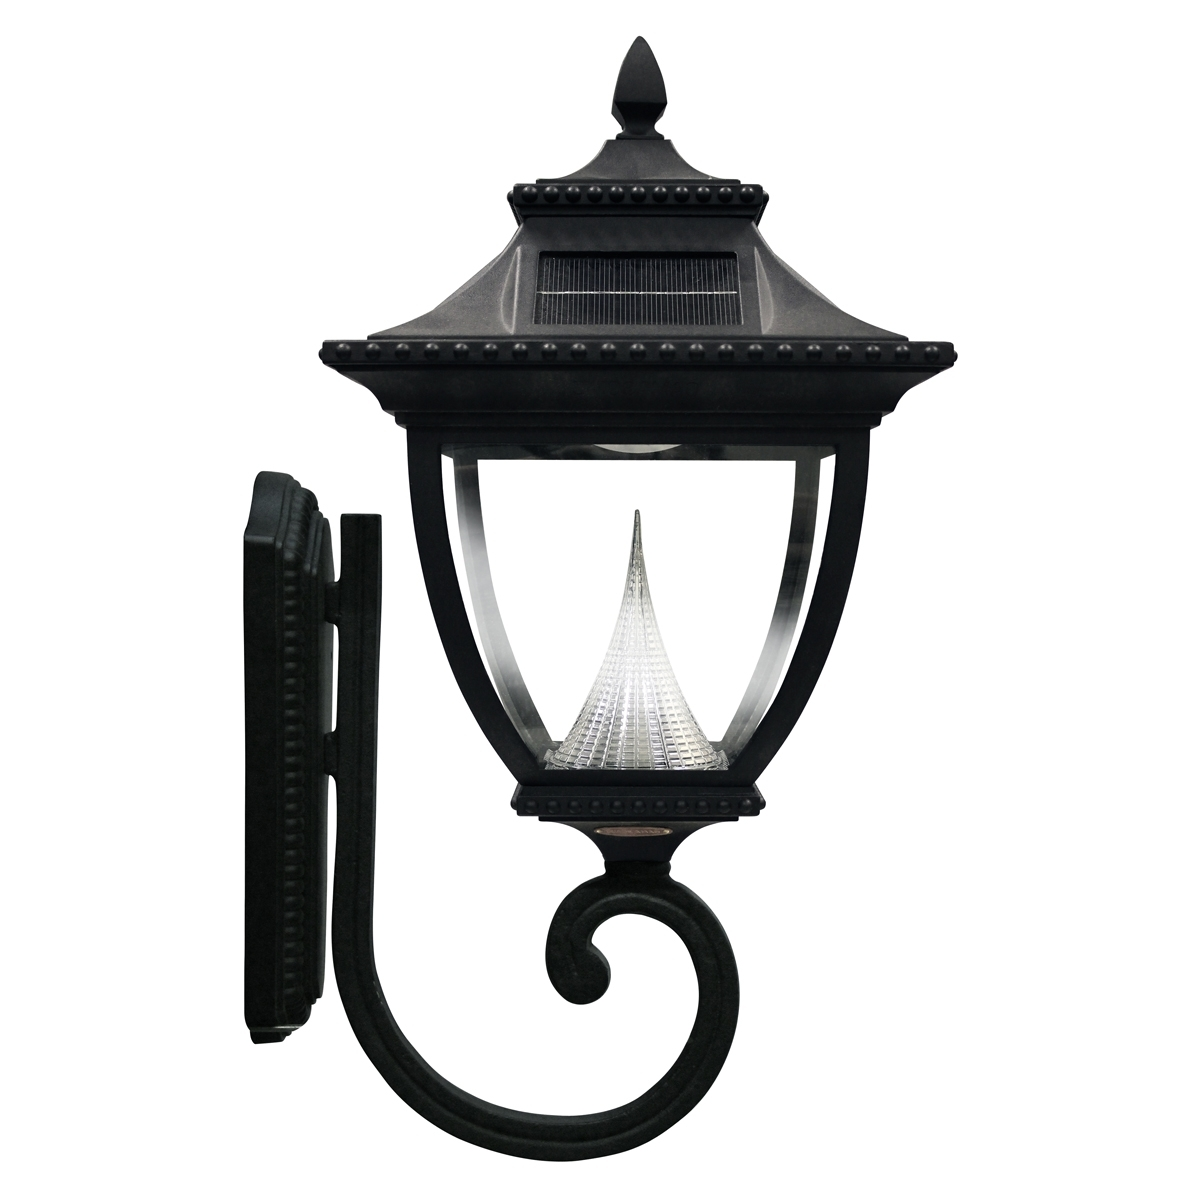 Outdoor Wall Lighting At Amazon Pertaining To Latest Outdoor Lighting: Amazing Solar Outdoor Sconces Solar Wall Mounted (View 17 of 20)